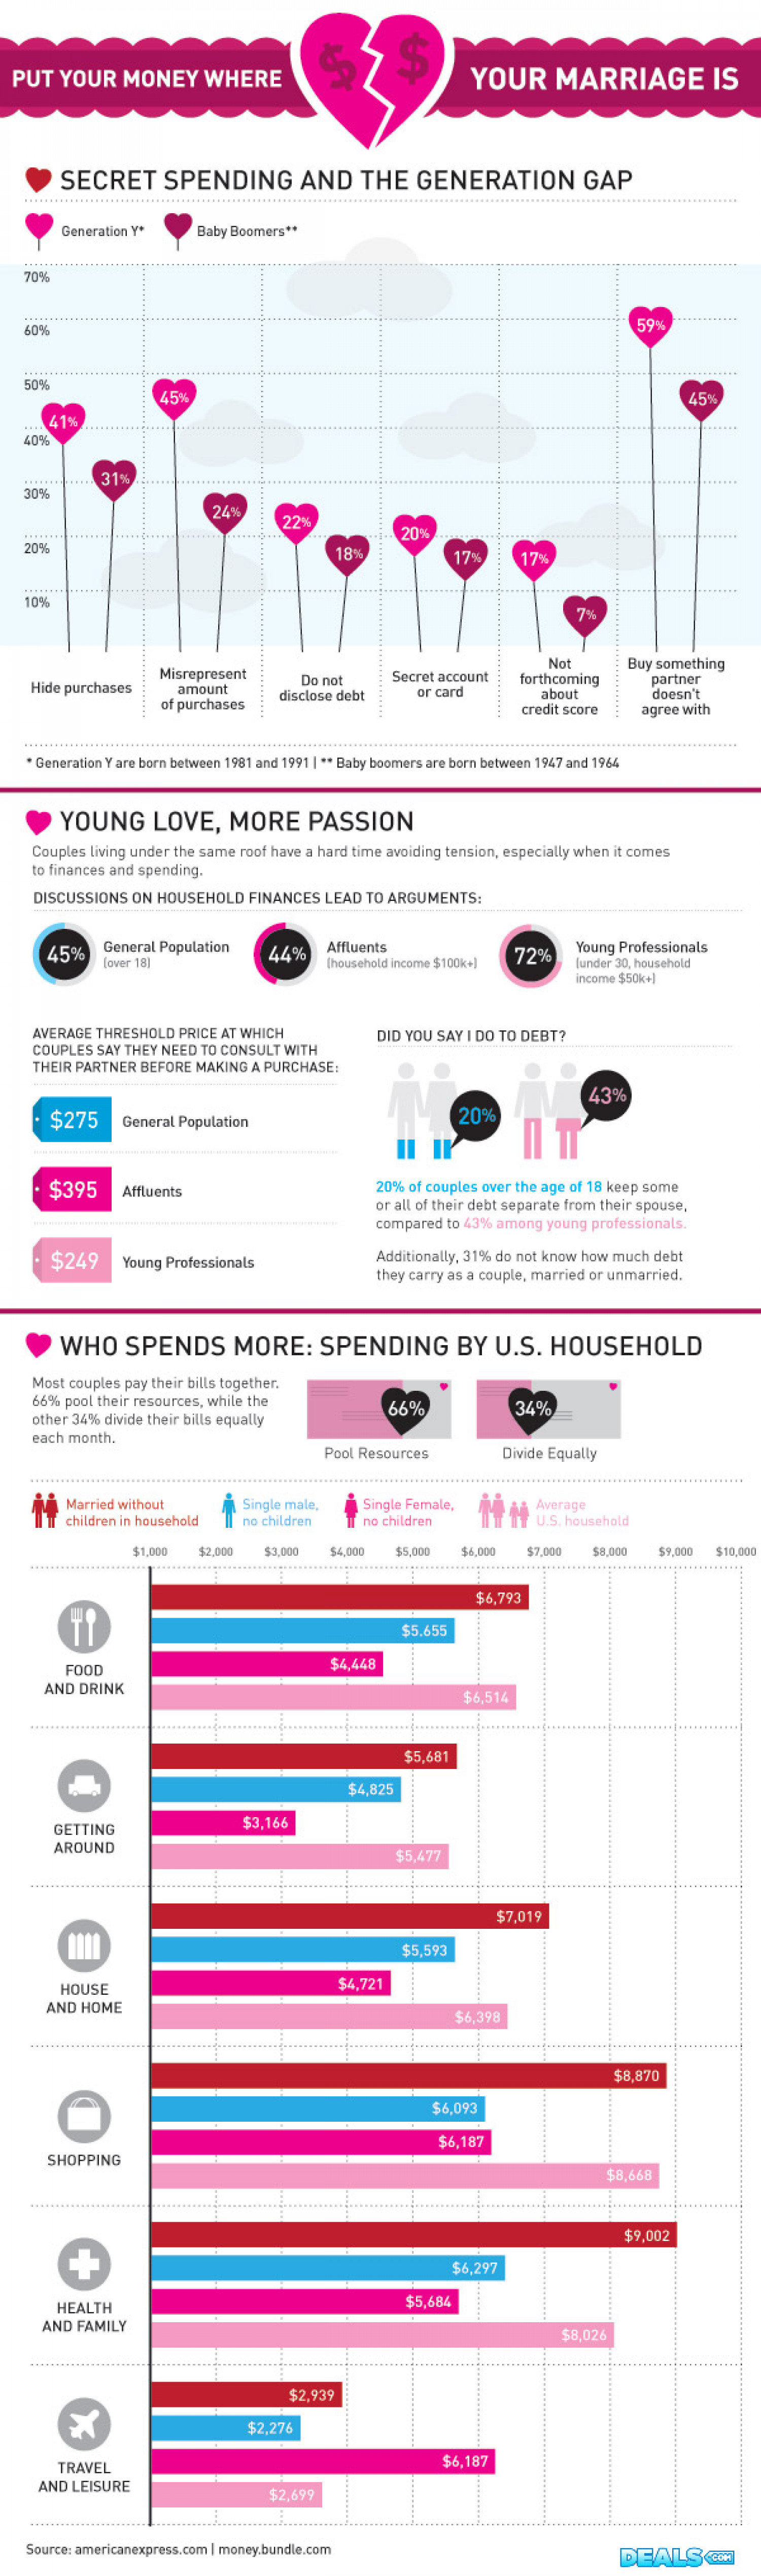 Put Your Money Where Your Marriage Is Infographic